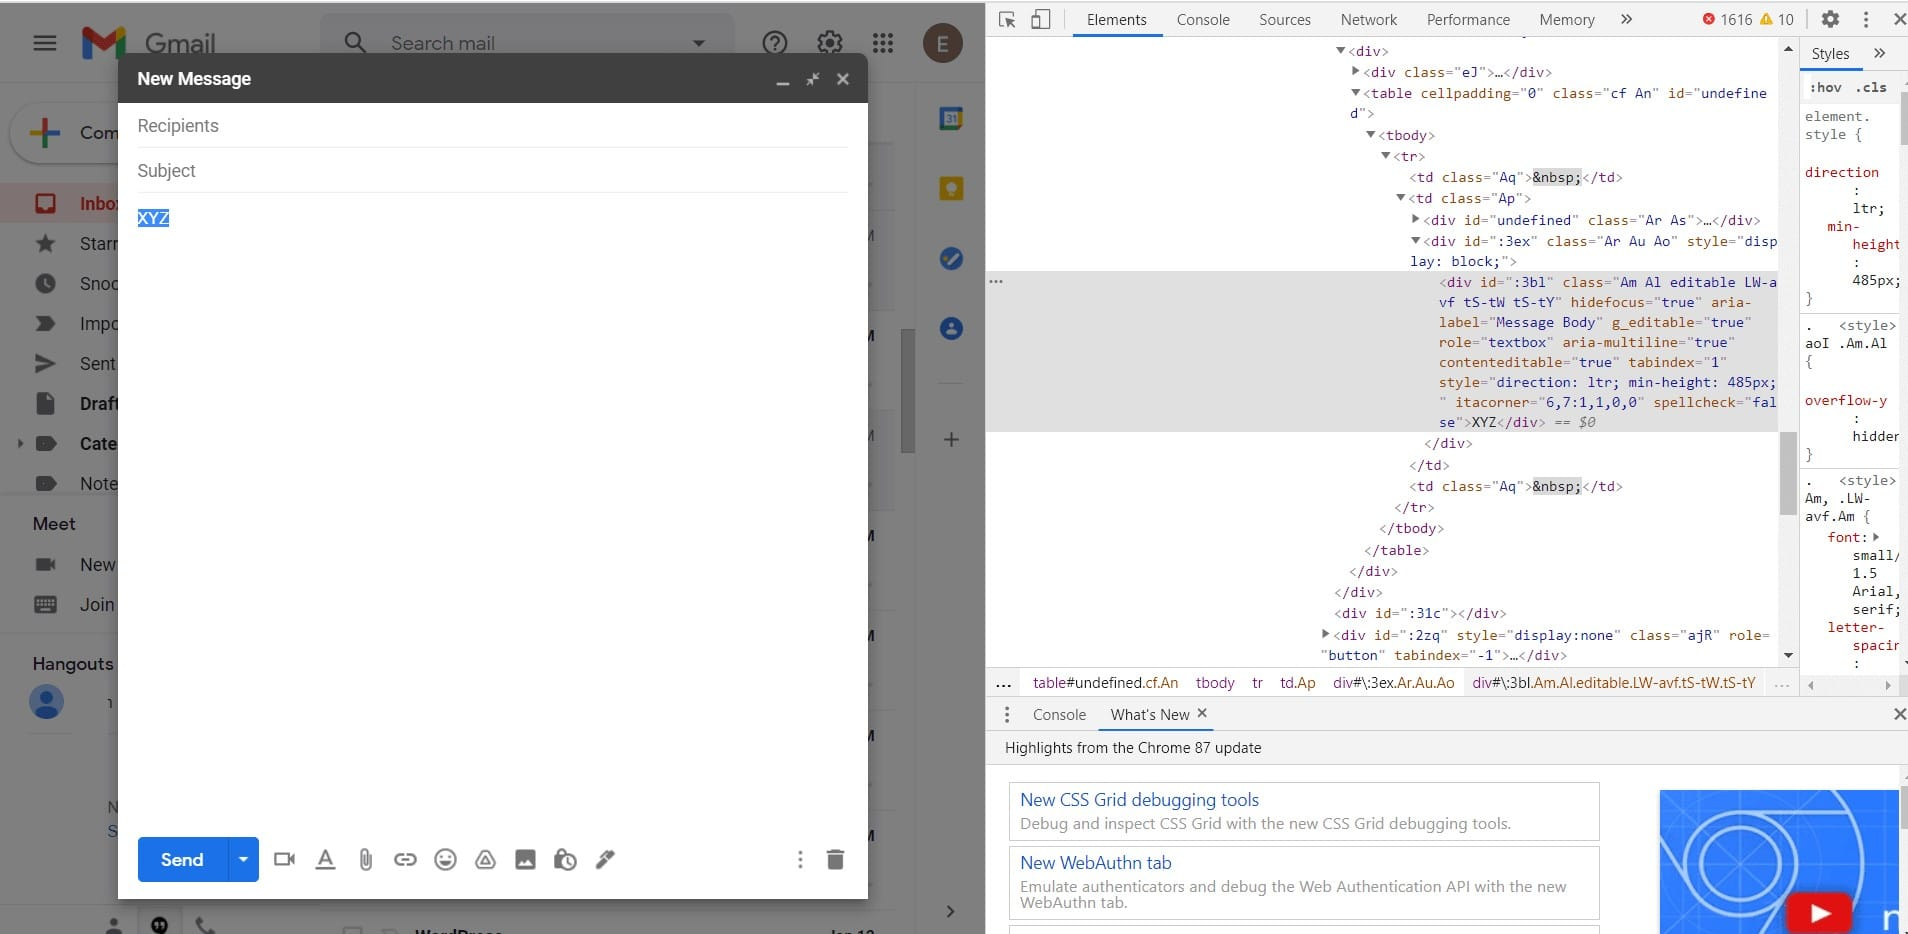 inserting html code in gmail email